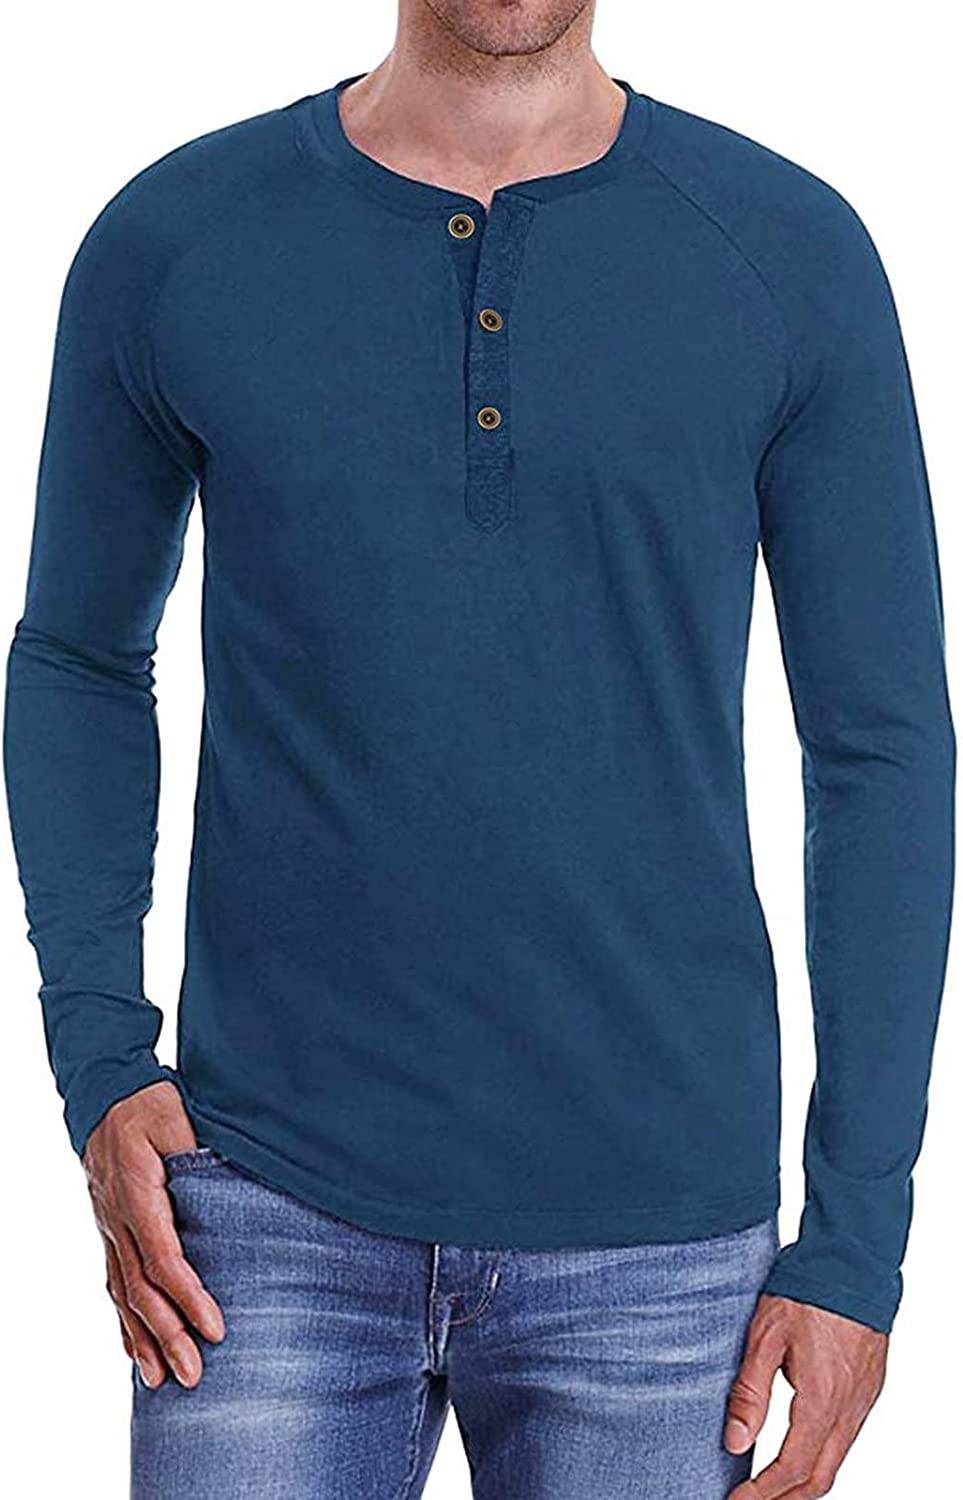 Mens Slim-fit Undershirts Long Sleeve Casual Sport Button Down Henley Shirts Solid Classic Basic T-Shirt Home Pajama